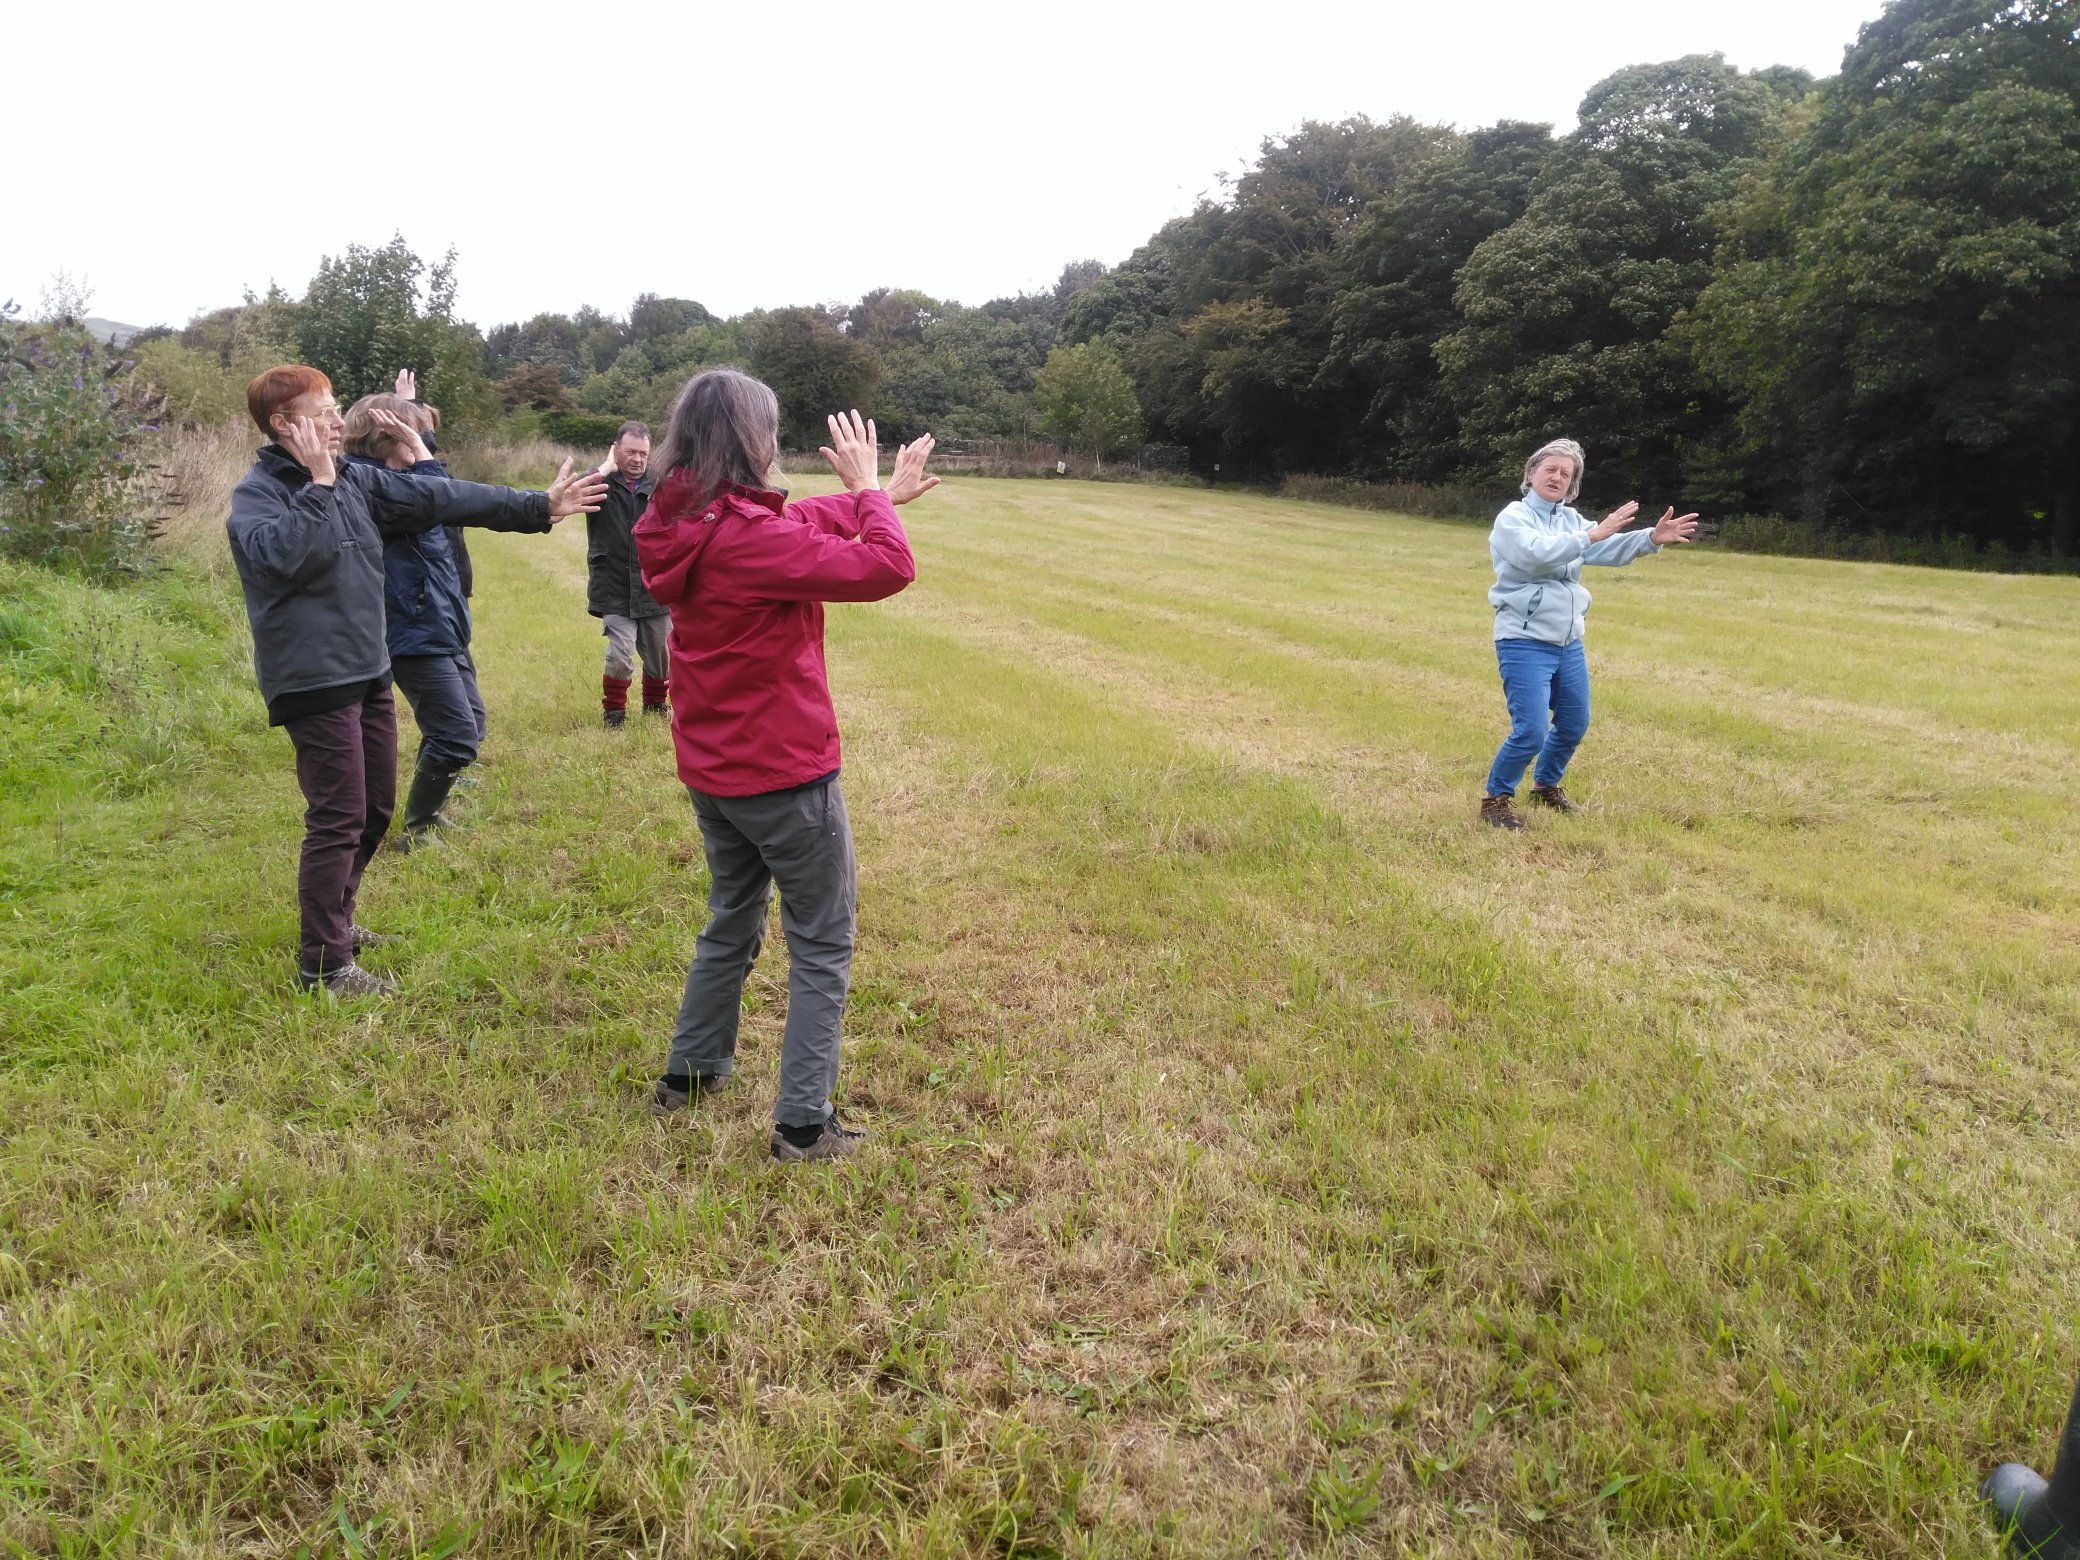 Five people stand in a field with their hands outstretched